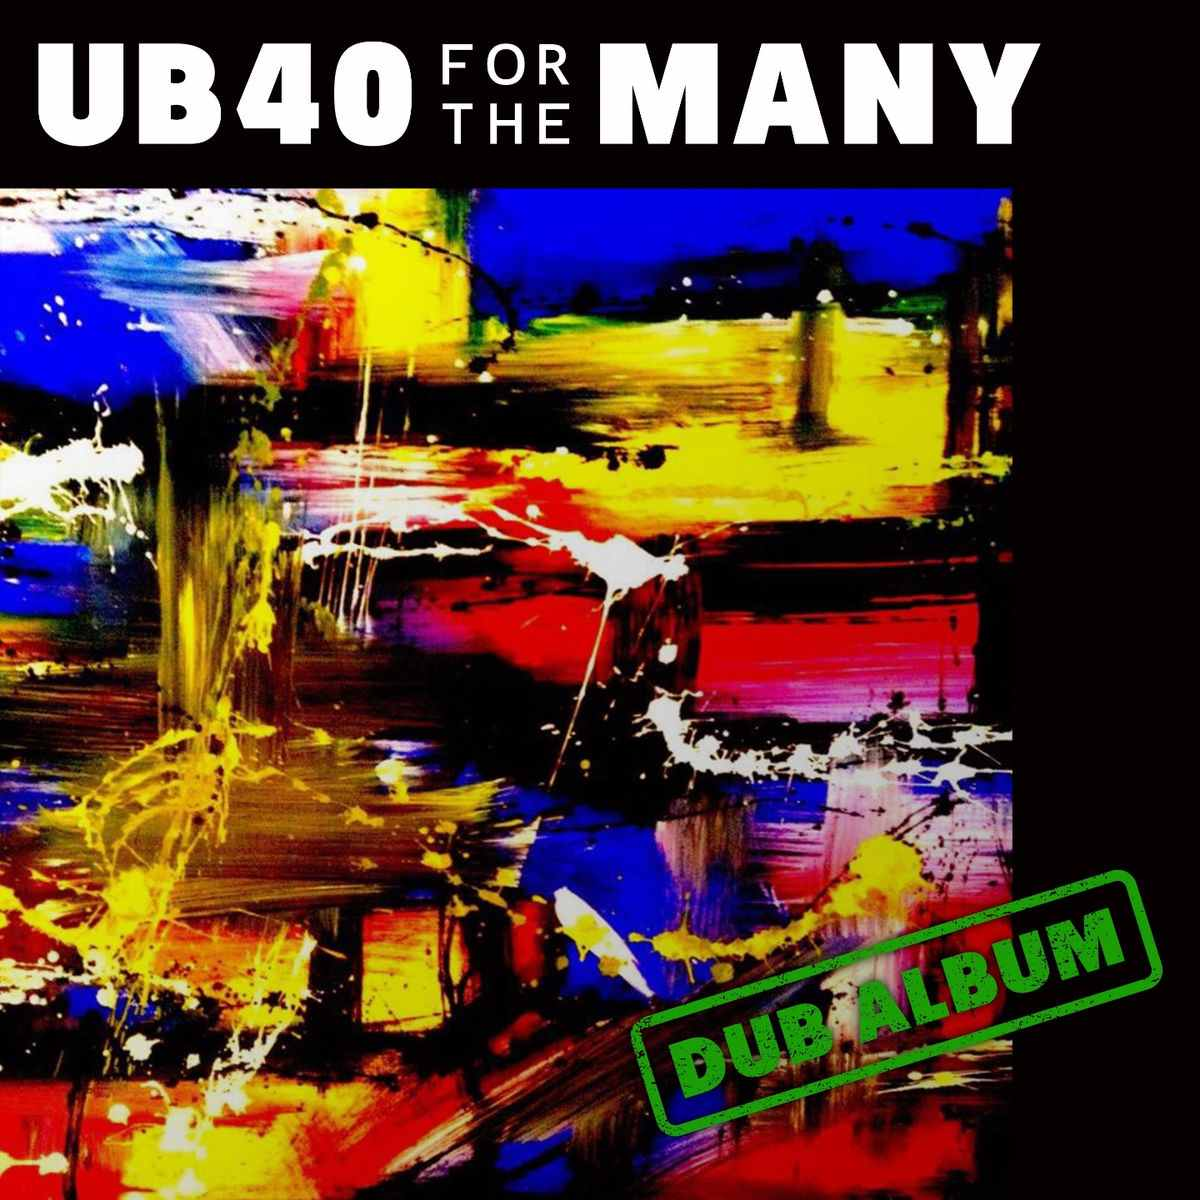 Dub and reggae - shake a hoof to the latest dub, reggae and other dubbed out sounds.